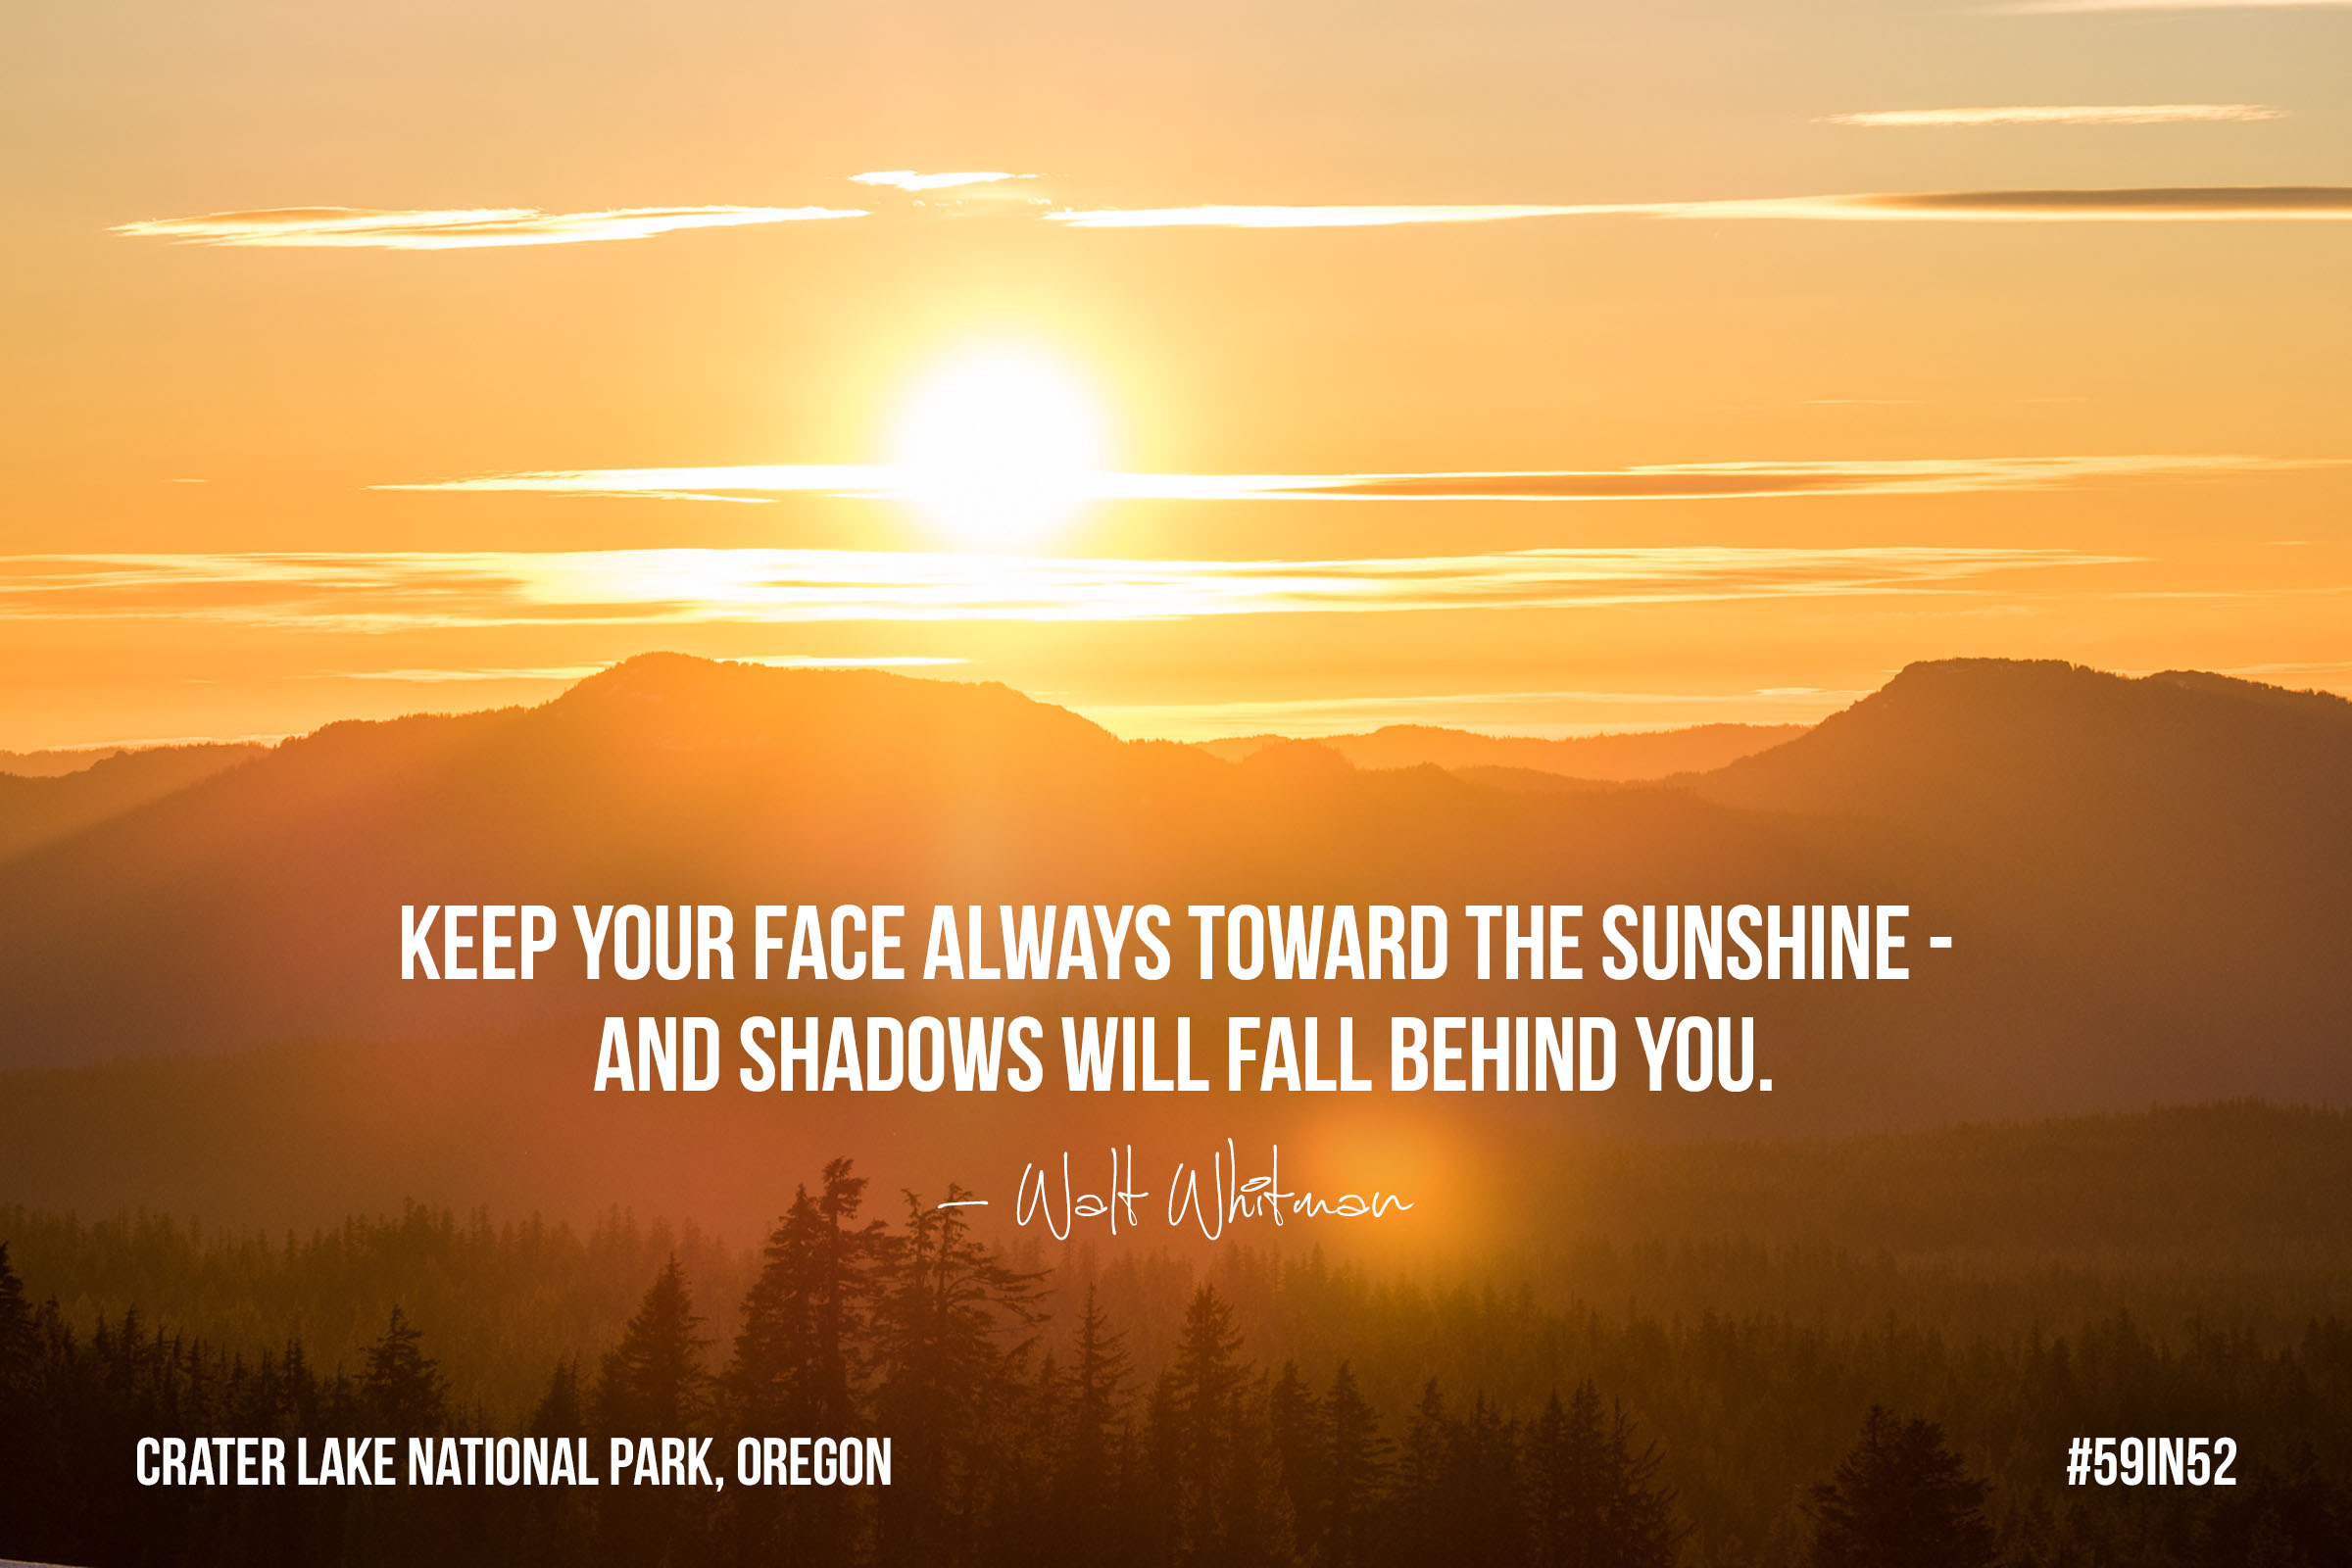 """""""Keep your face always toward the sunshine - and shadows will fall behind you."""" - Walt Whitman"""